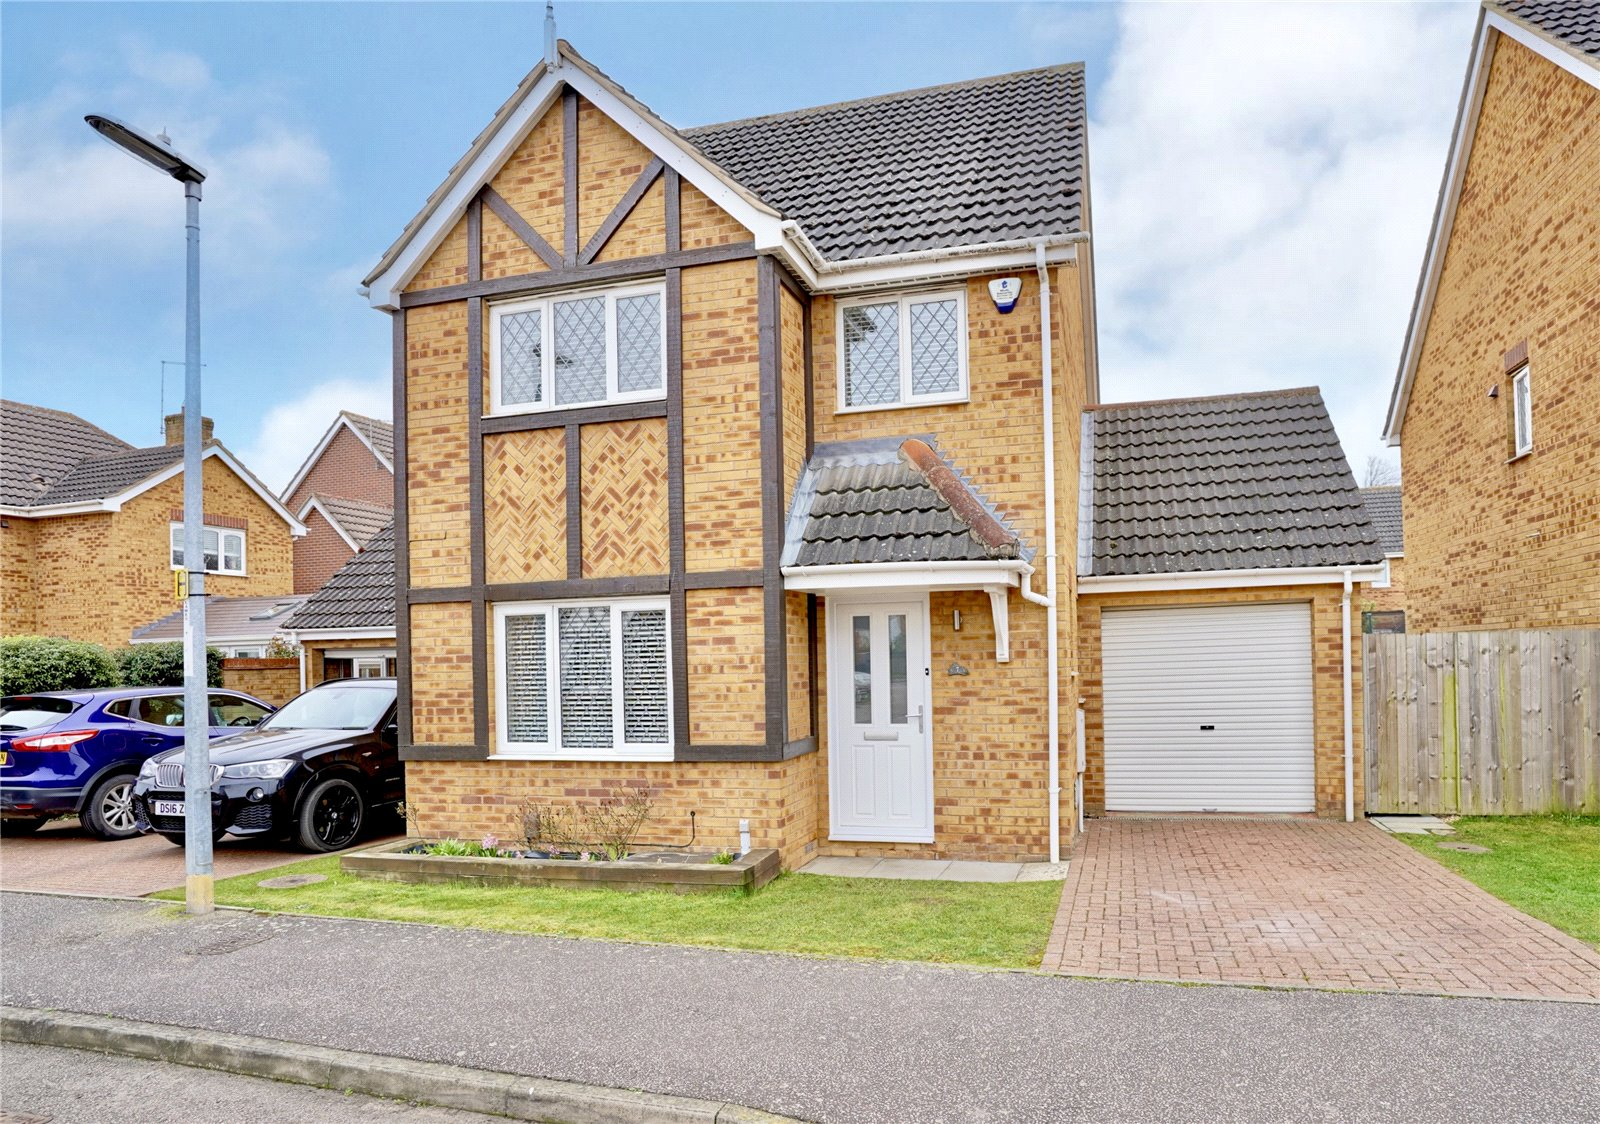 3 bed house for sale in St Neots, PE19 1RD, PE19